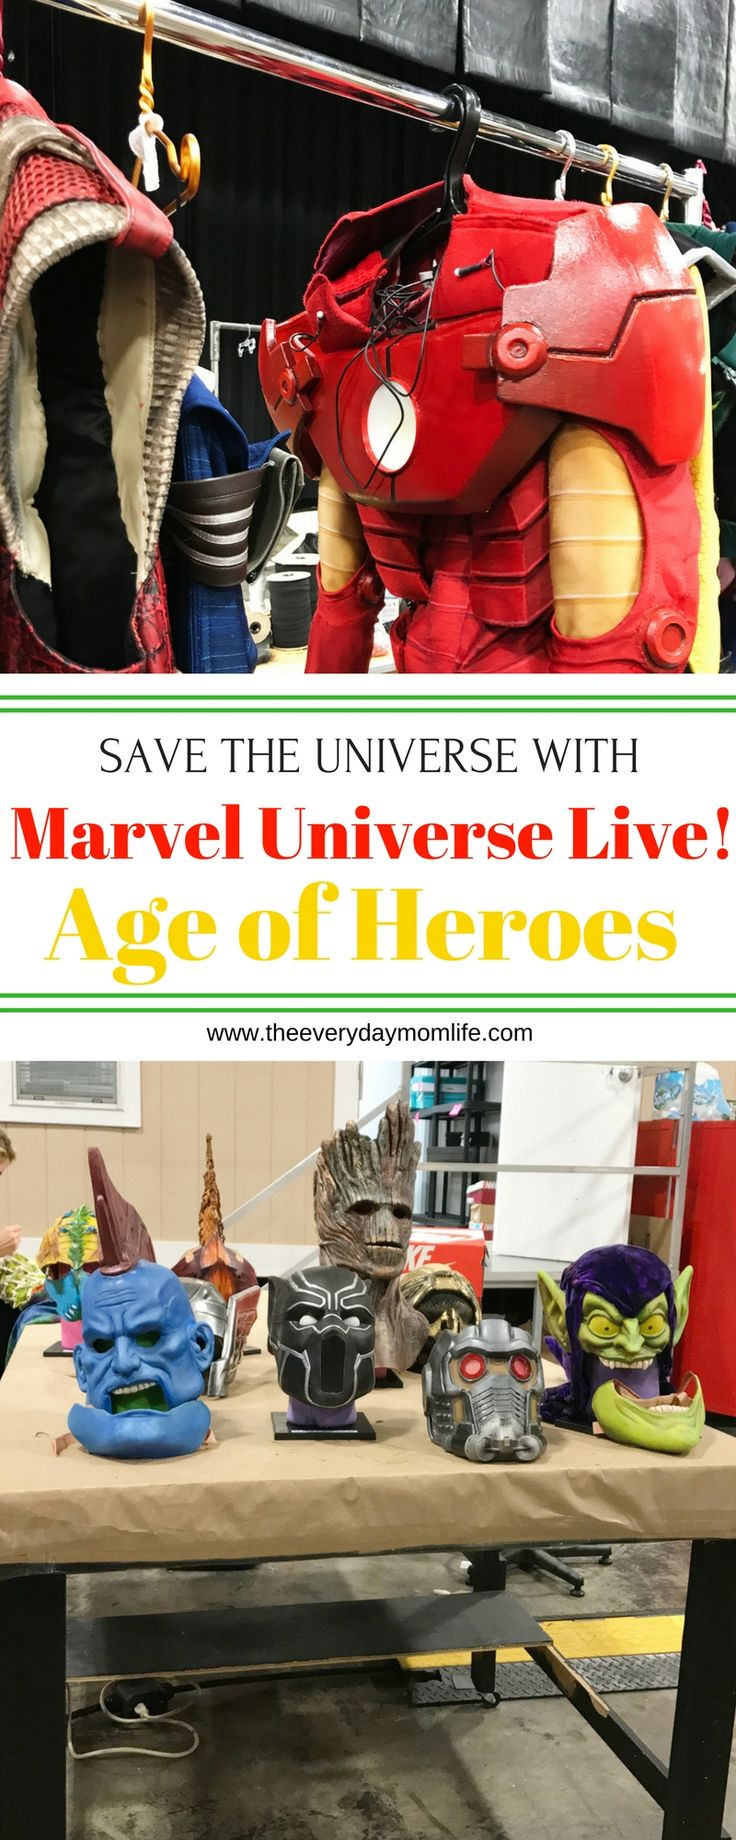 Take Off On A New Adventure With Your Favorite Super Heroes In Marvel Universe Live! Age of Heroes. Go behind the scenes and see what it takes to be a super hero. This is a fun family experience not to be missed. Perfect family entertainment. AD